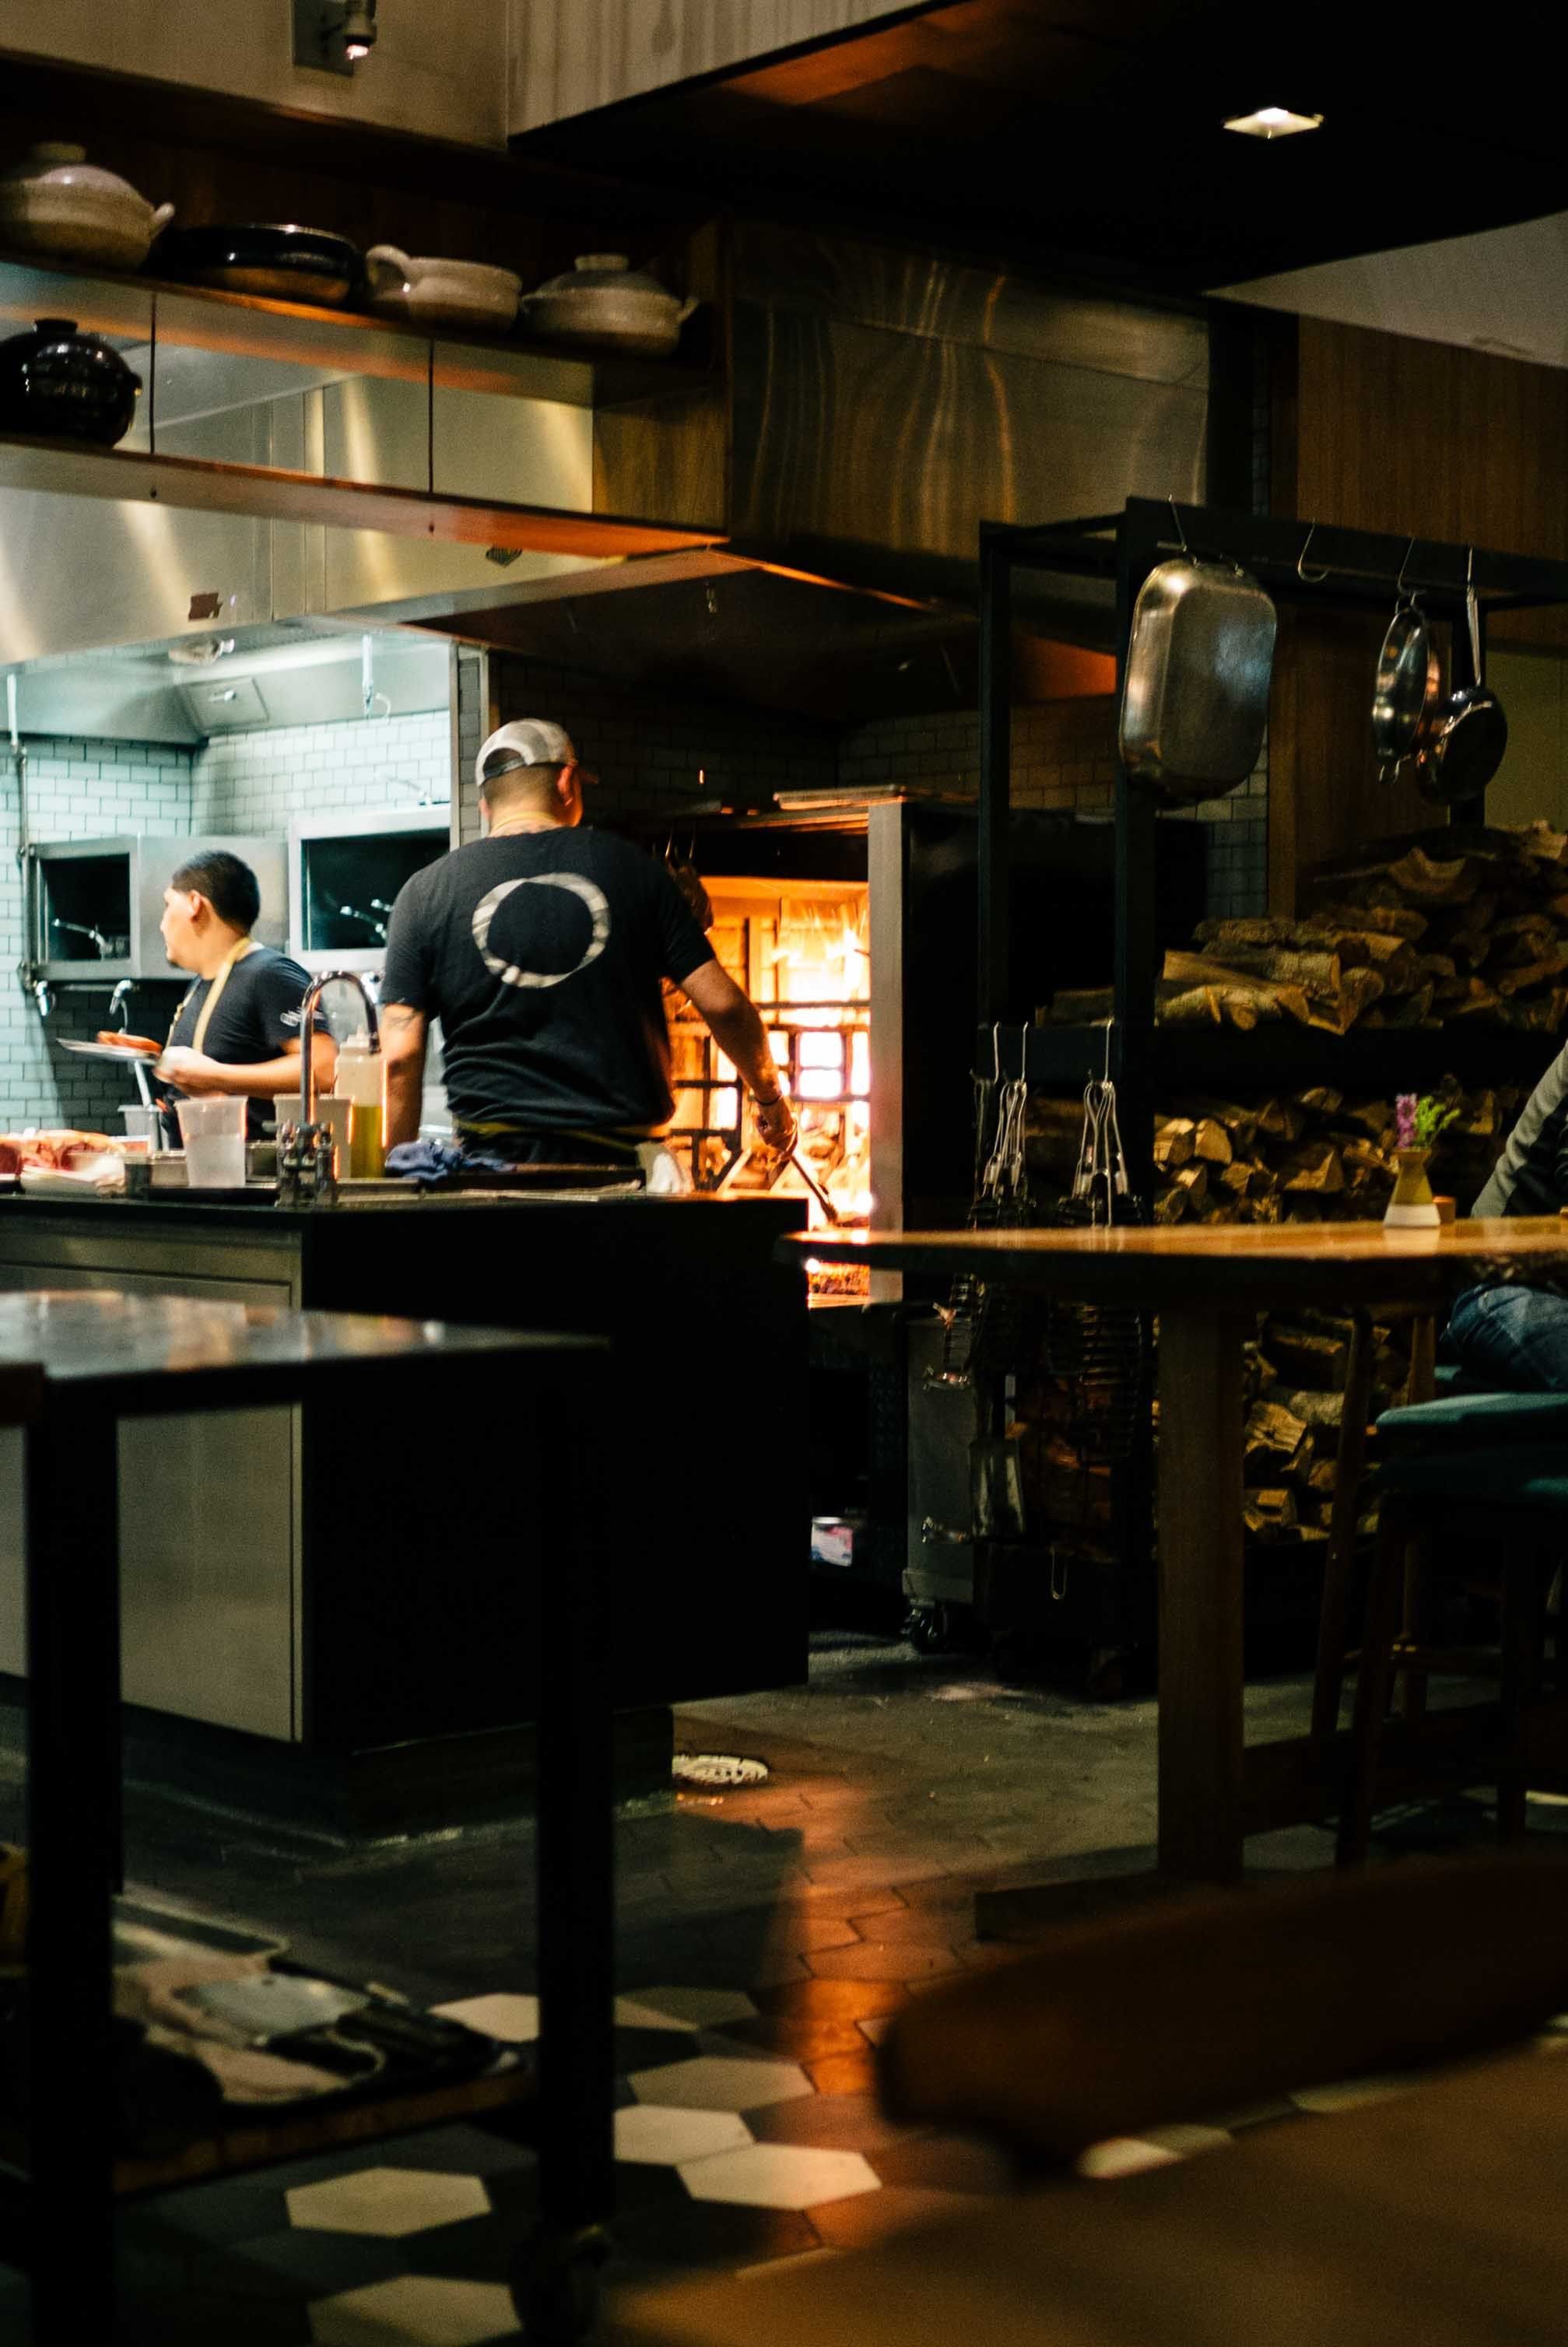 Top Downtown La Restaurants Otium The Taste Edit Open Kitchen Restaurant Downtown La Restaurants Wood Fired Oven